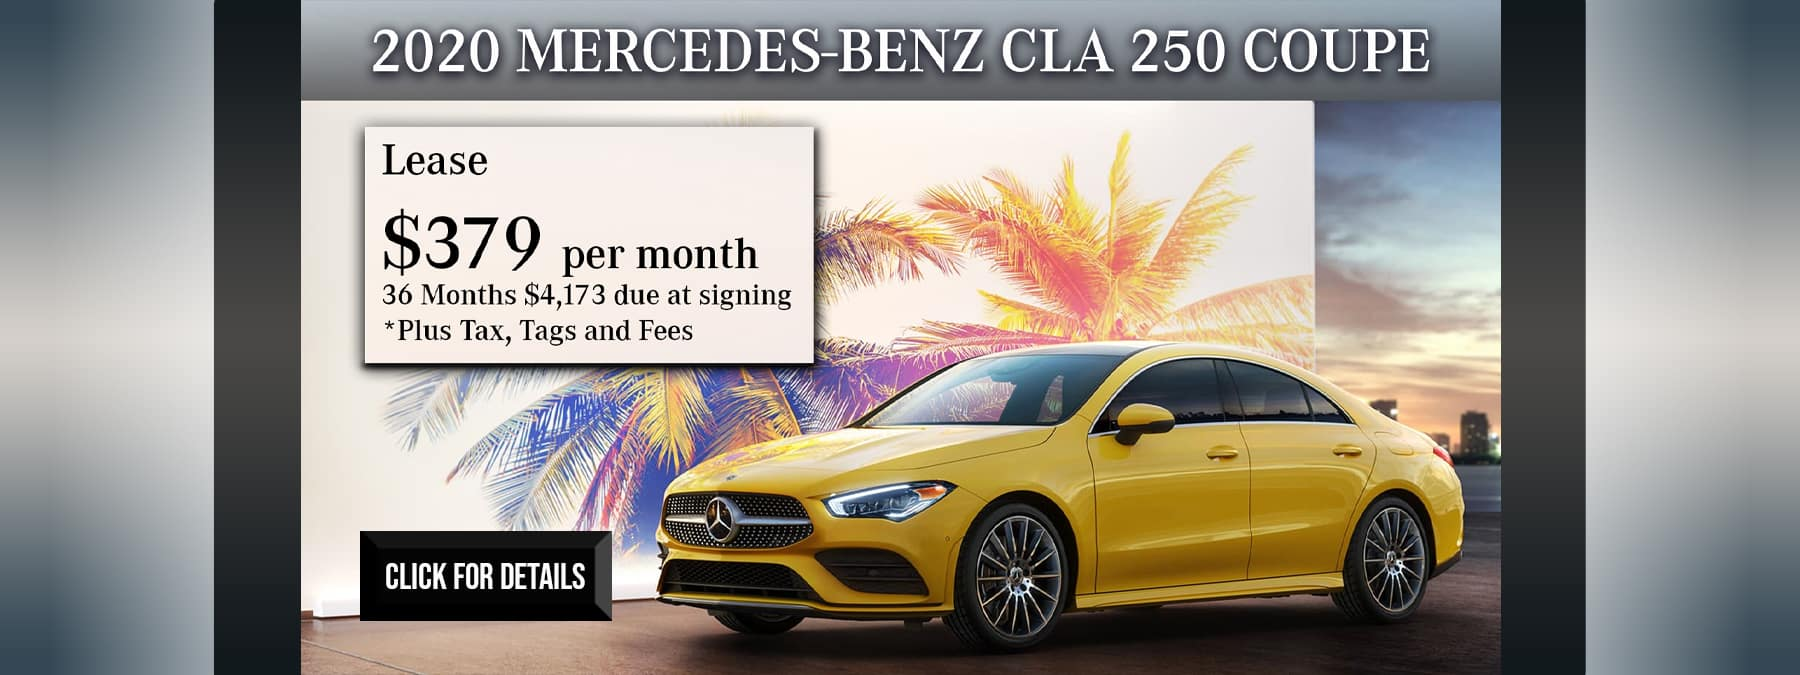 OCTOBER CLA OFFER HOME PAGE